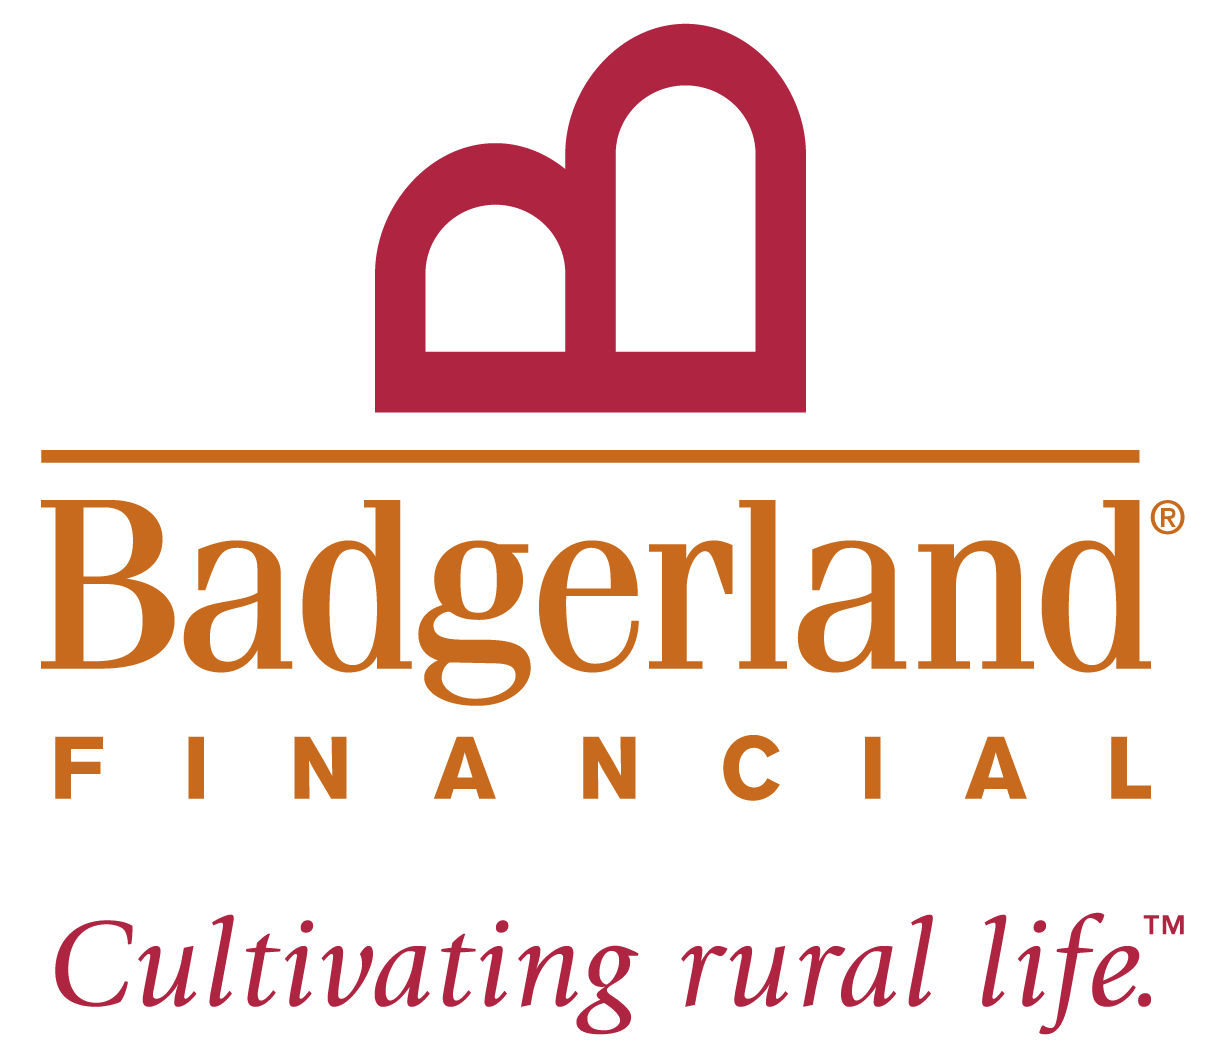 Badgerland Financial cmyk-01